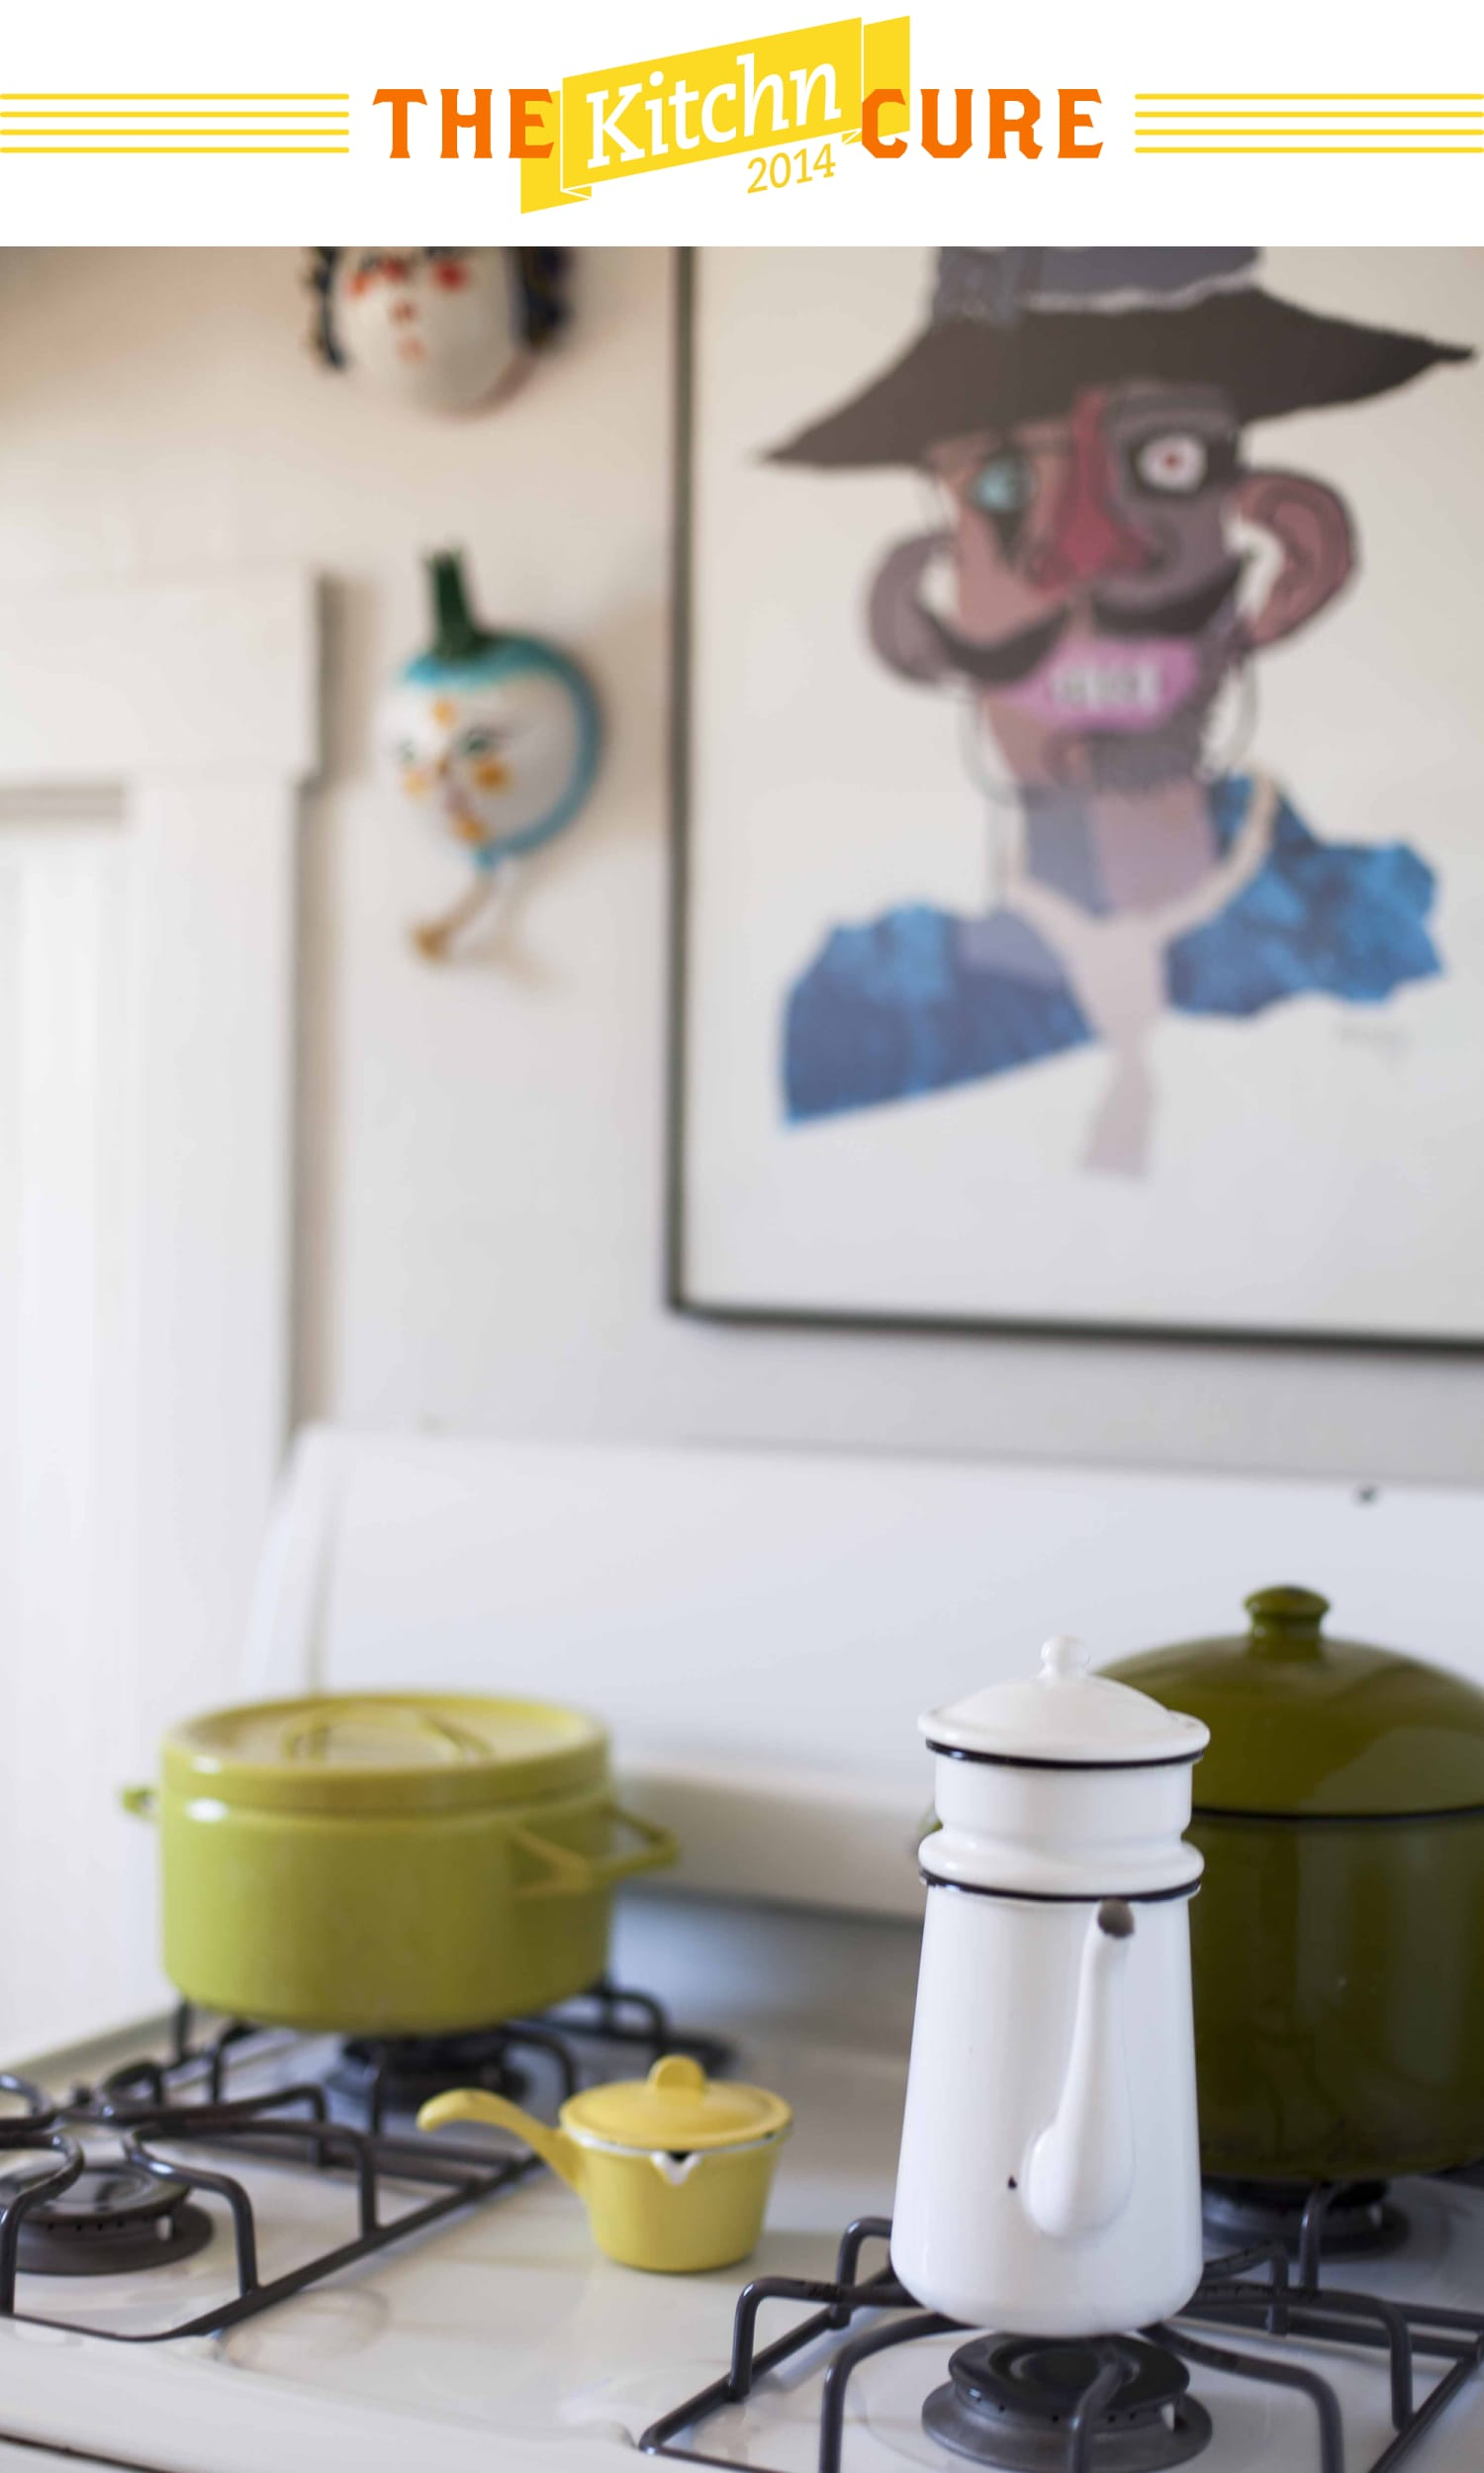 The Kitchn Cure Day 8: Clean Your Stovetop and Range Hood